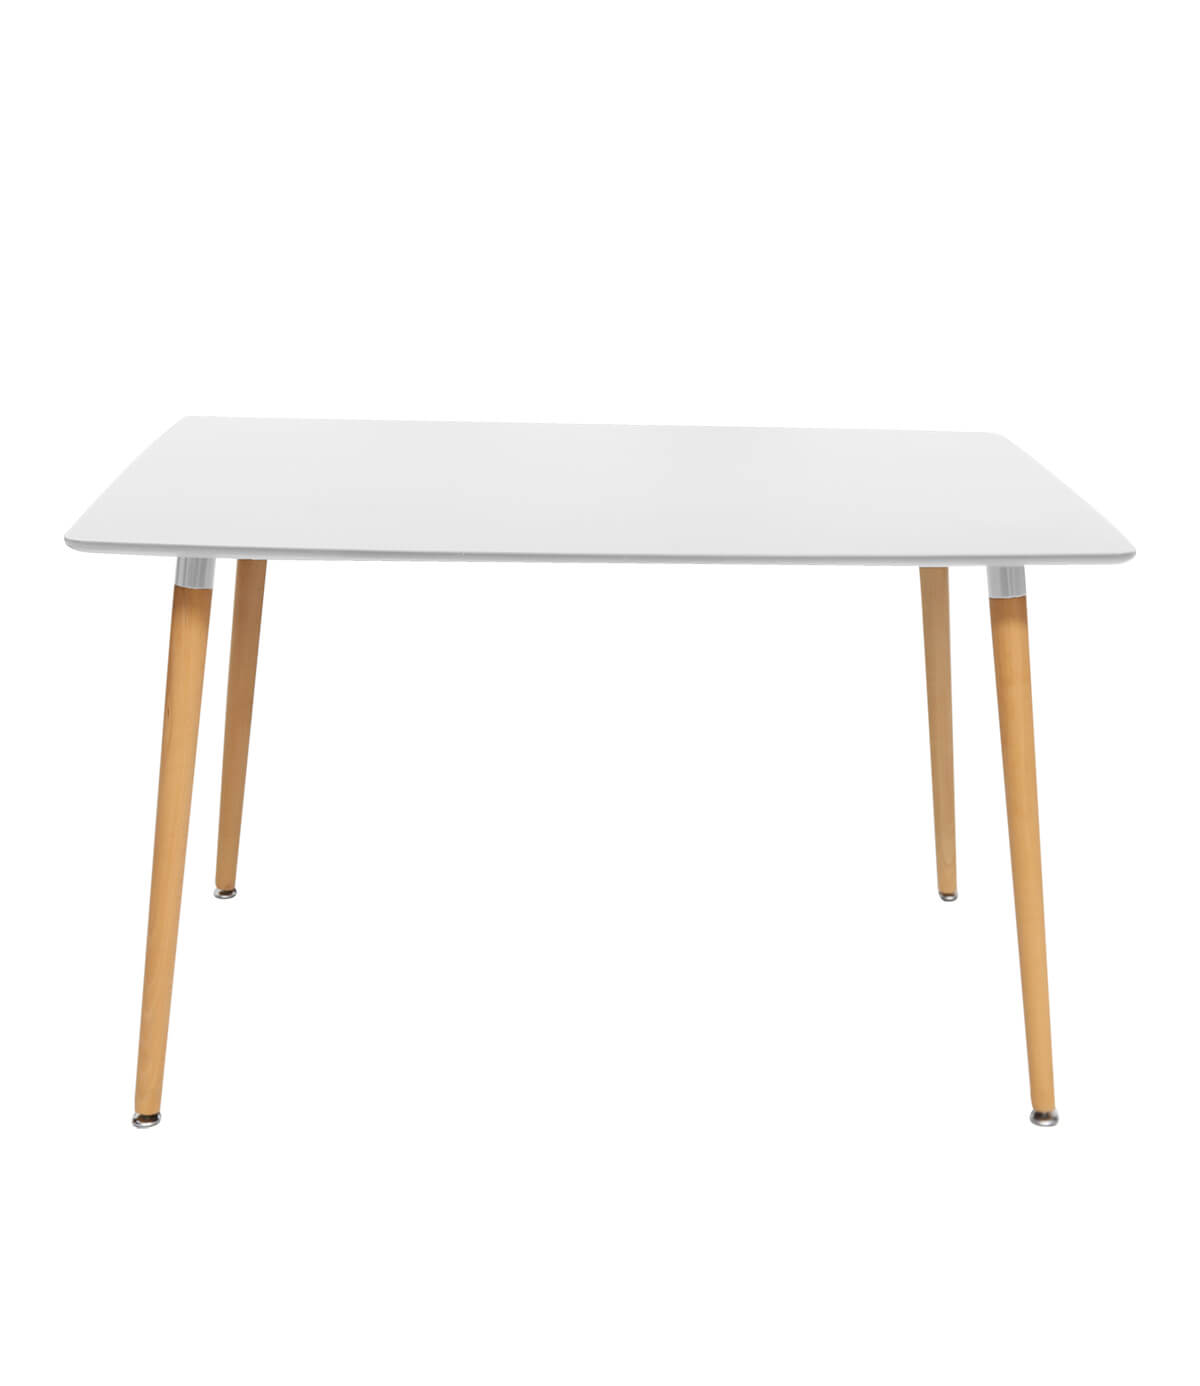 Manchester furniture supplies - Table carree 120 cm ...